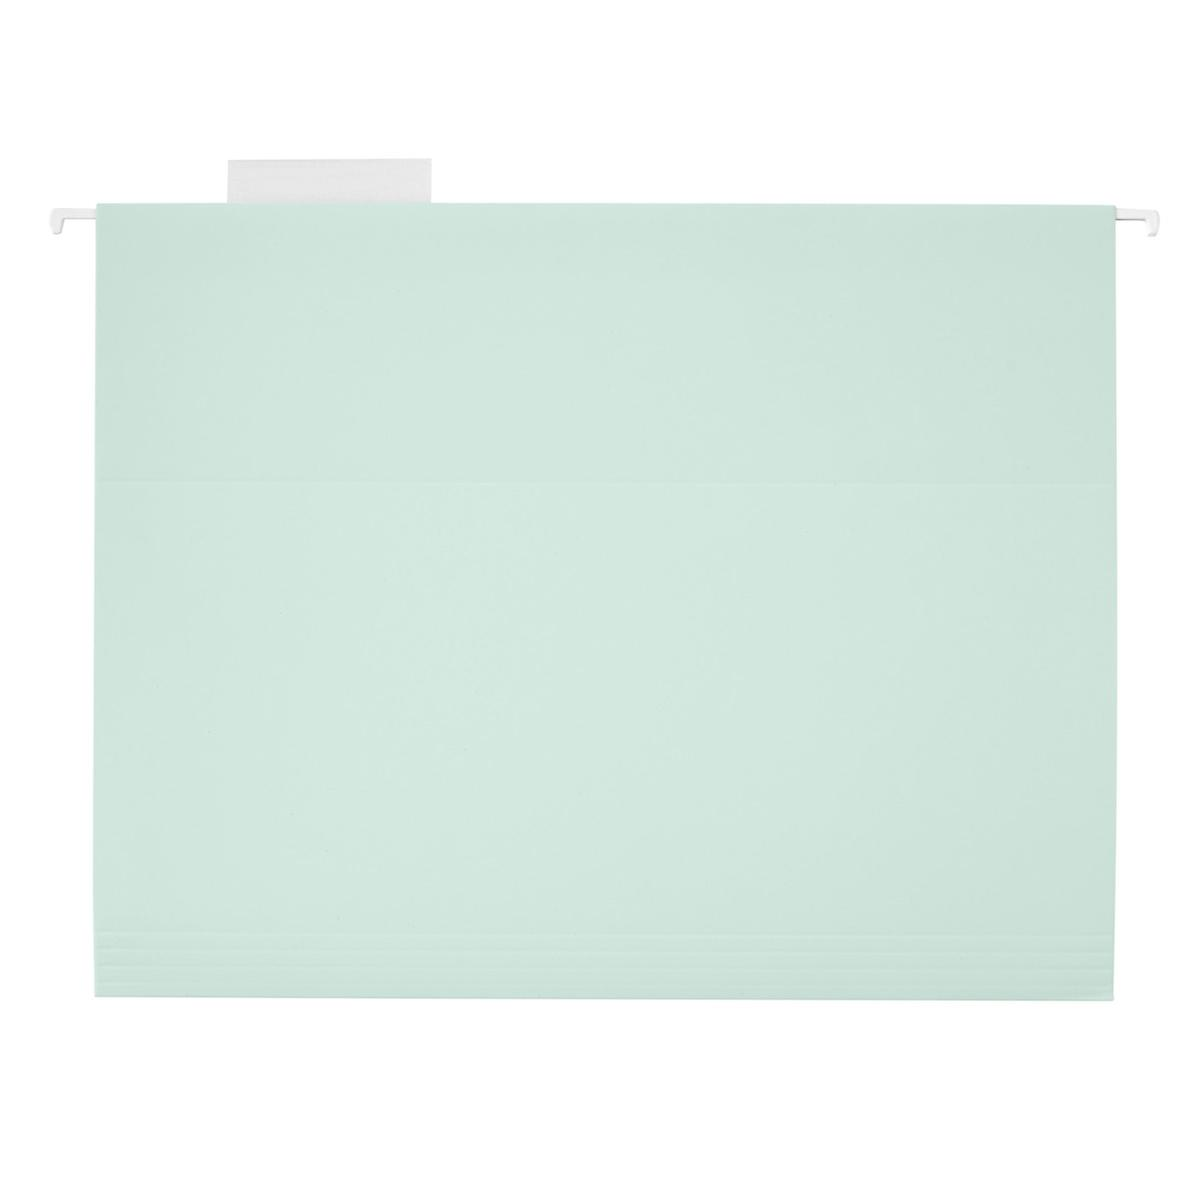 Aqua Mint Letter-Size Hanging File Folders